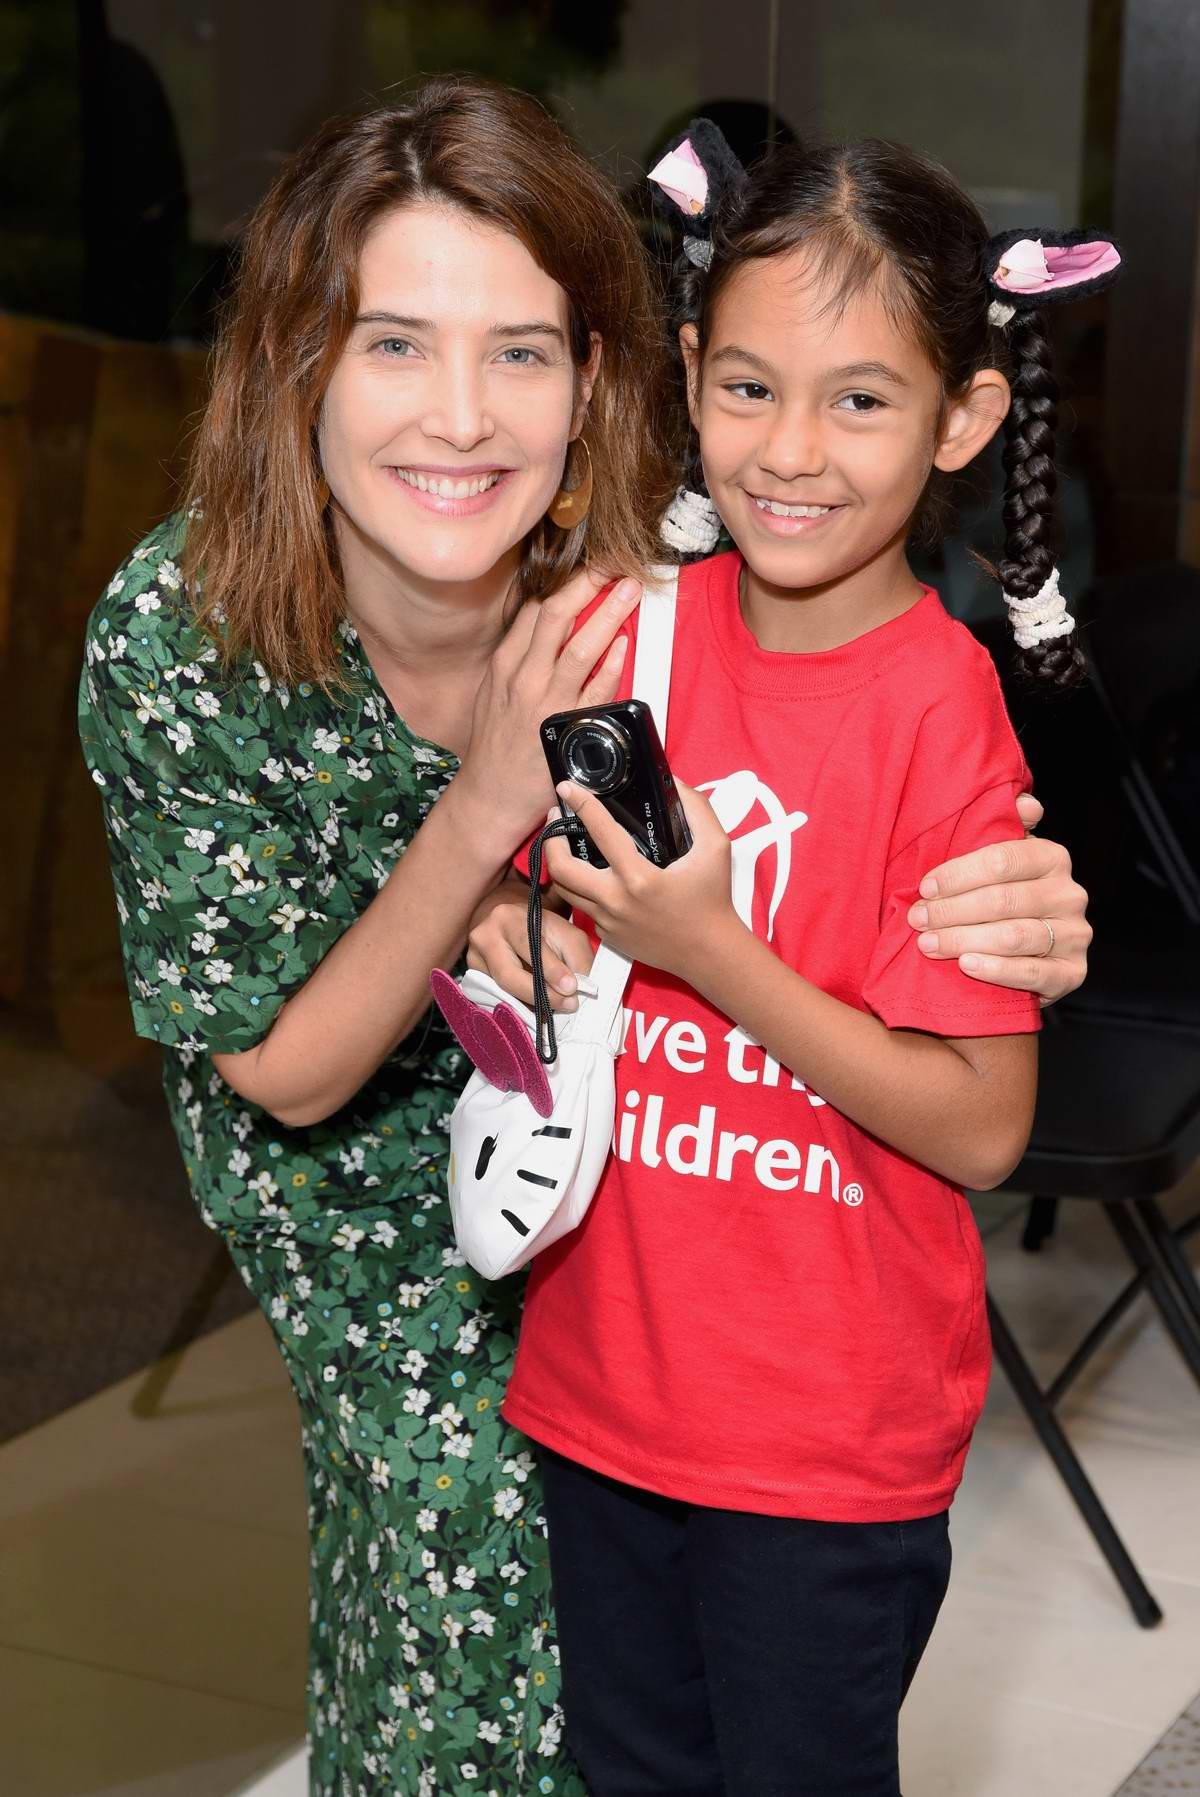 Cobie Smulders Attends Save The Children Celebrates International Day Of The Girl In Los Angeles 111018 1